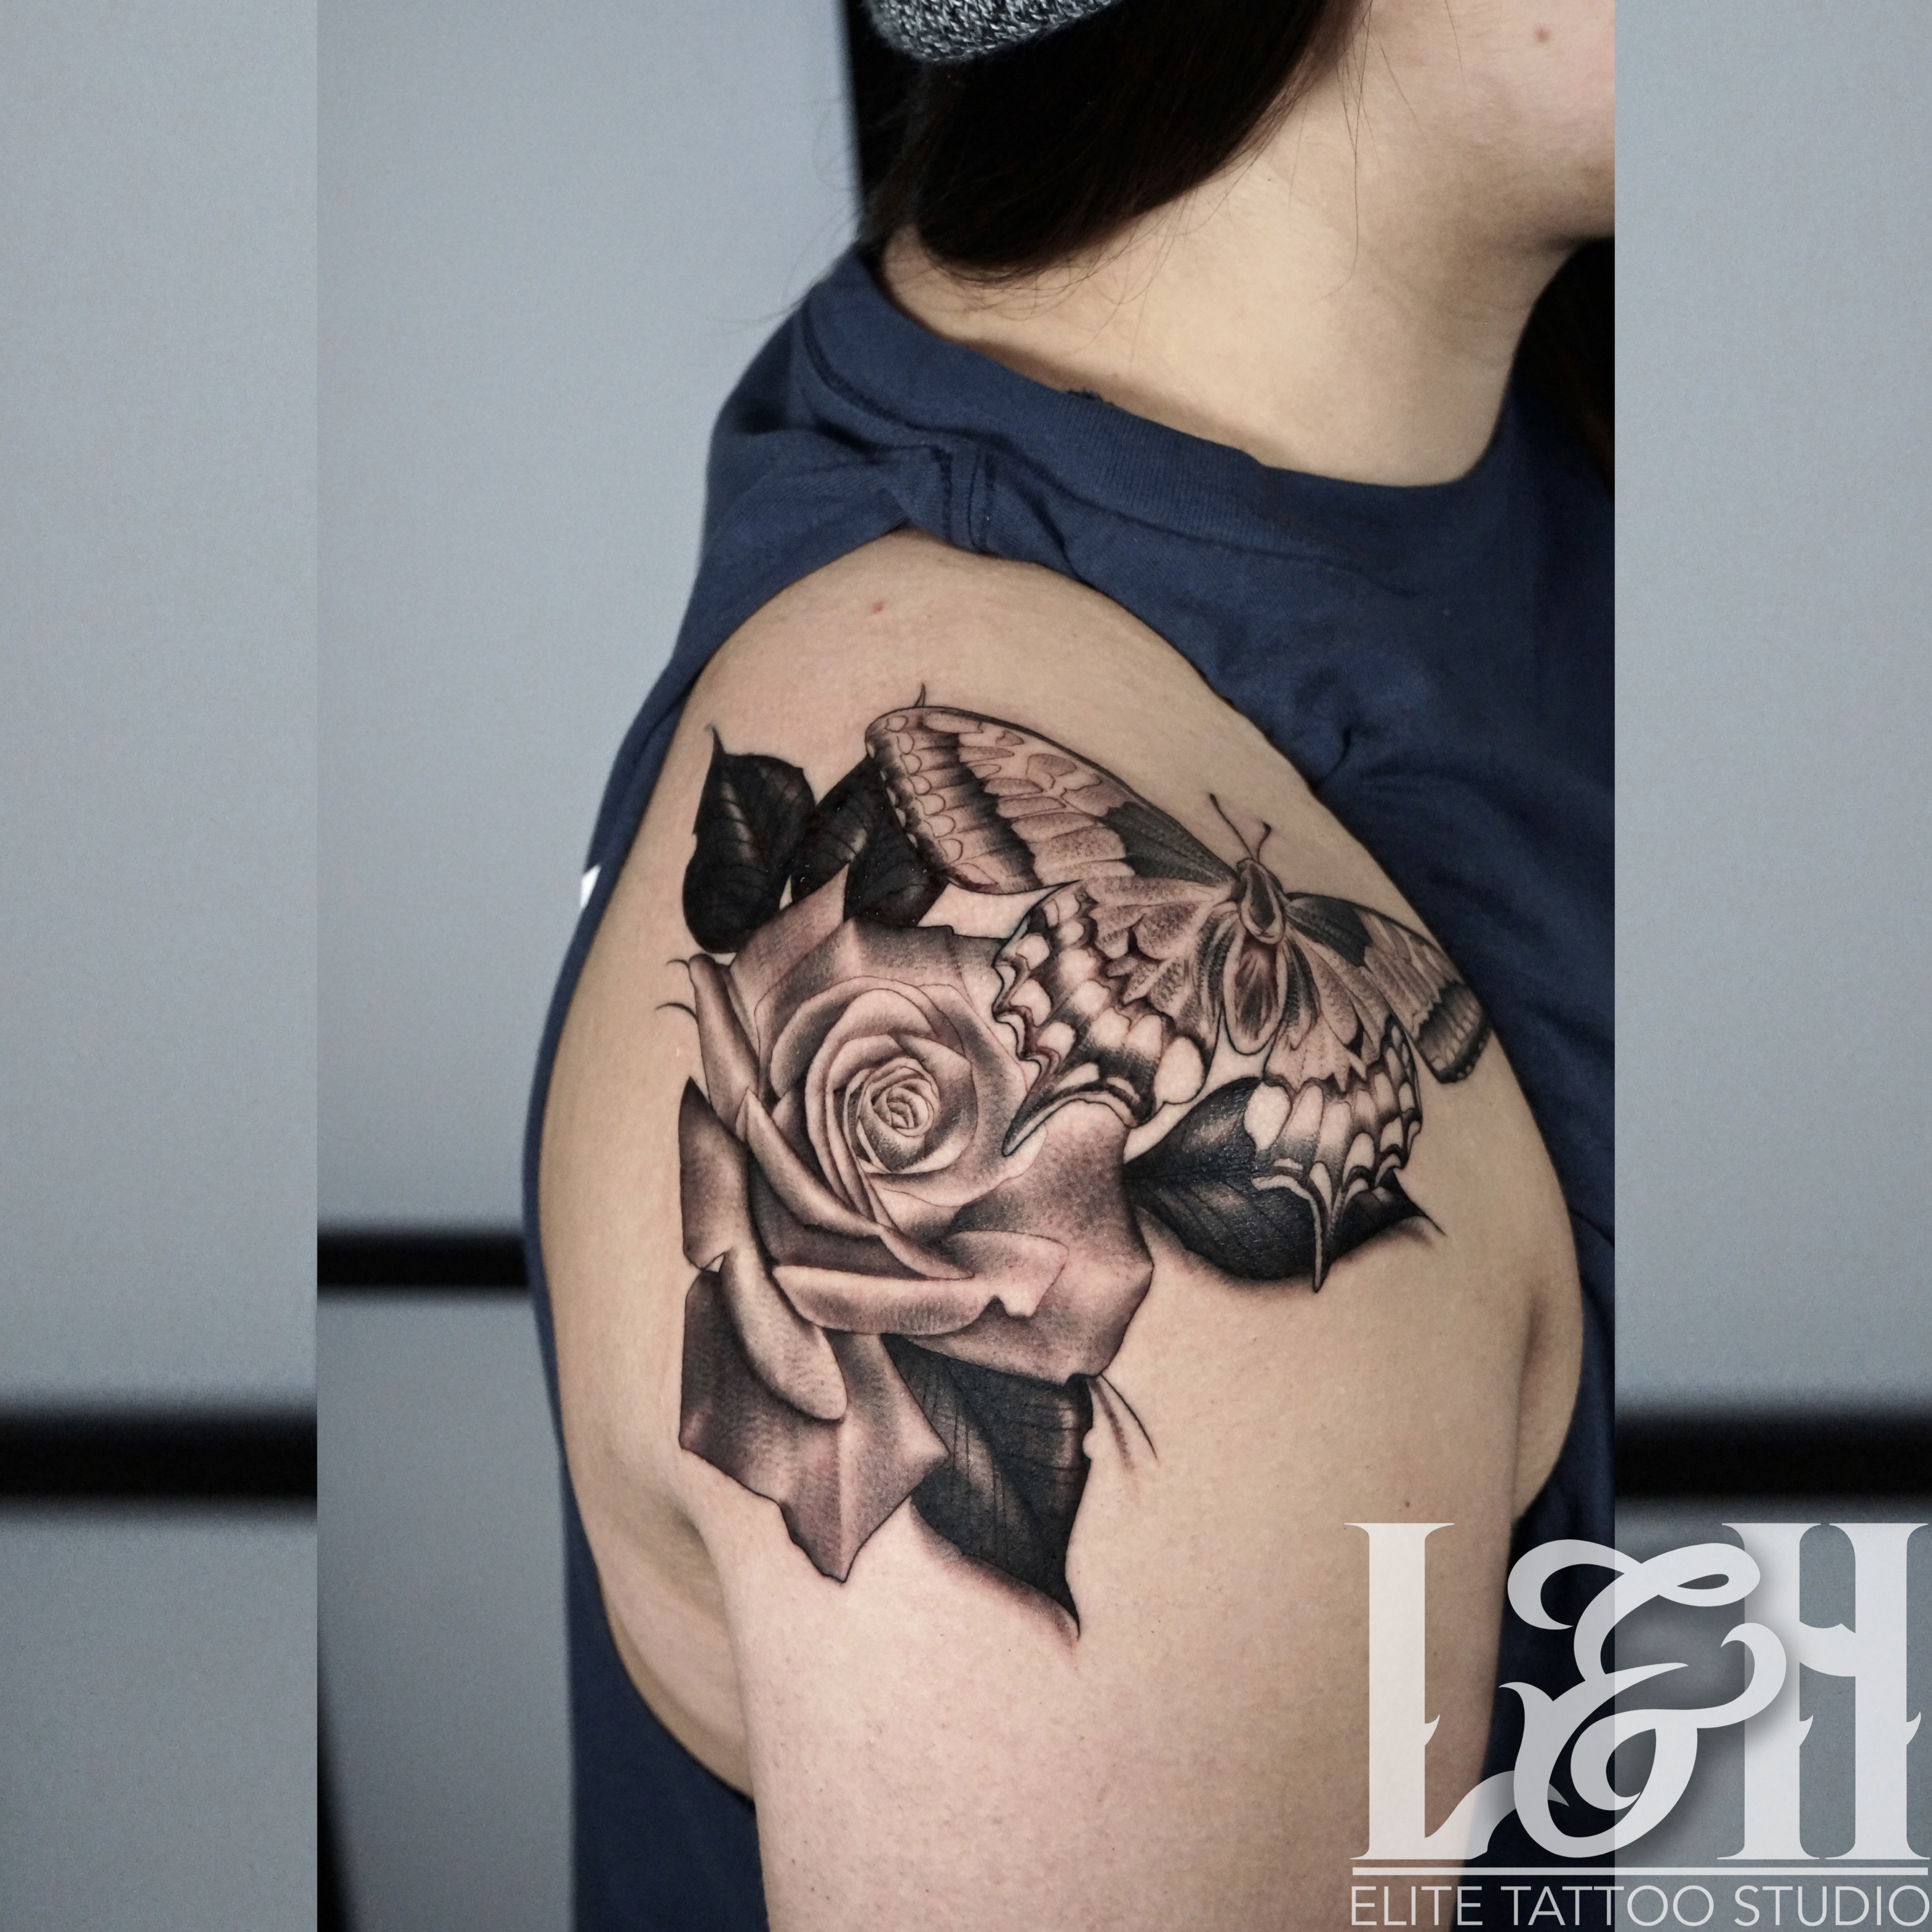 Black and Grey Butterfly and Roses Tattoo - Love n Hate